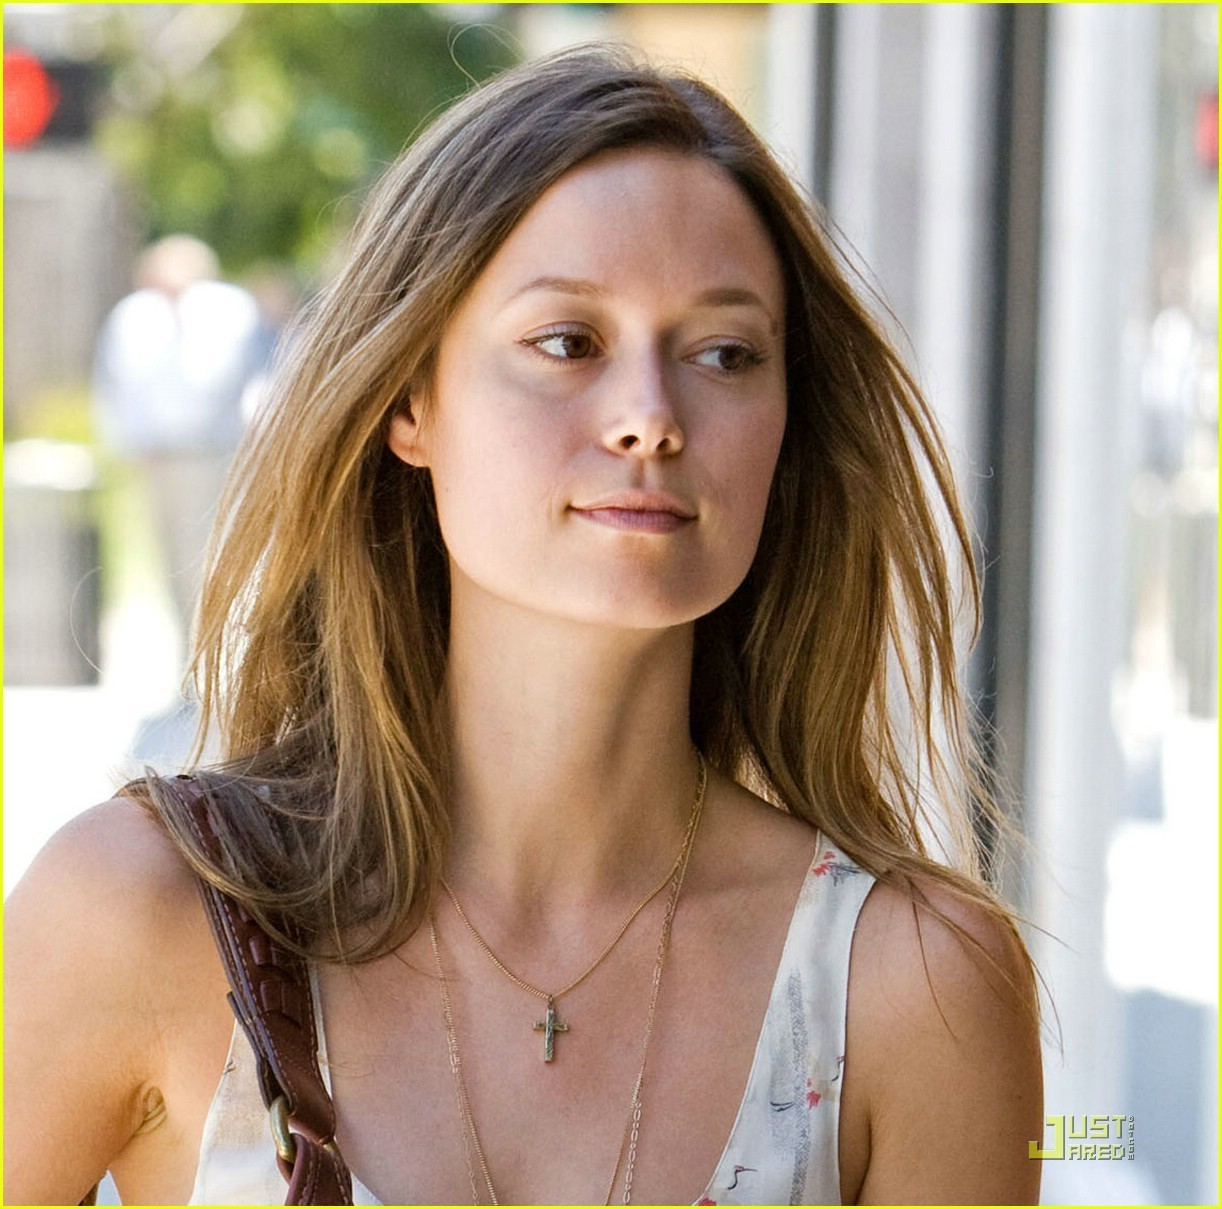 Summer Glau - Photo Actress